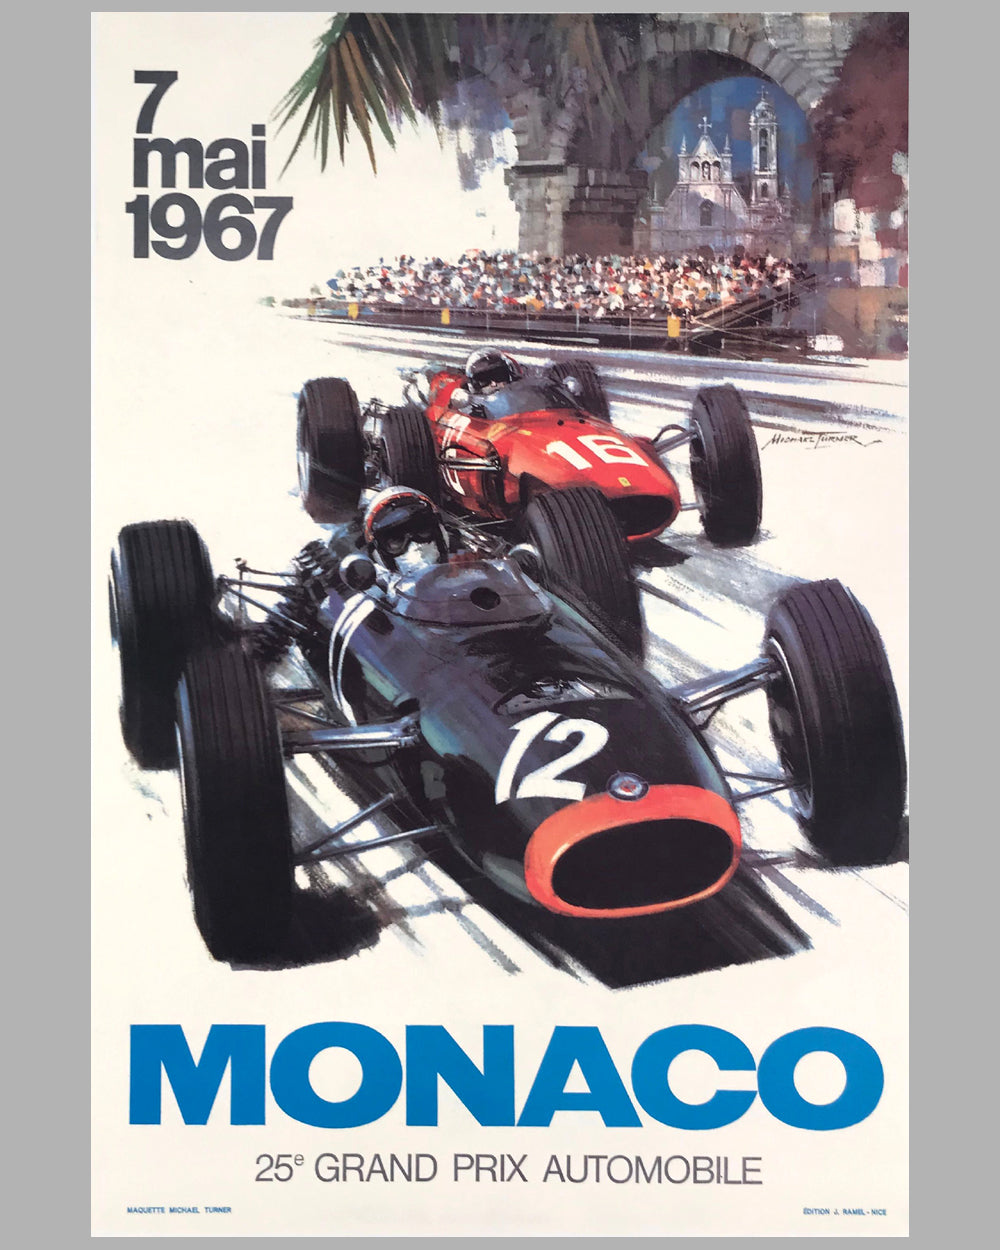 19 - 1967 Monaco Grand Prix original poster by Michael Turner